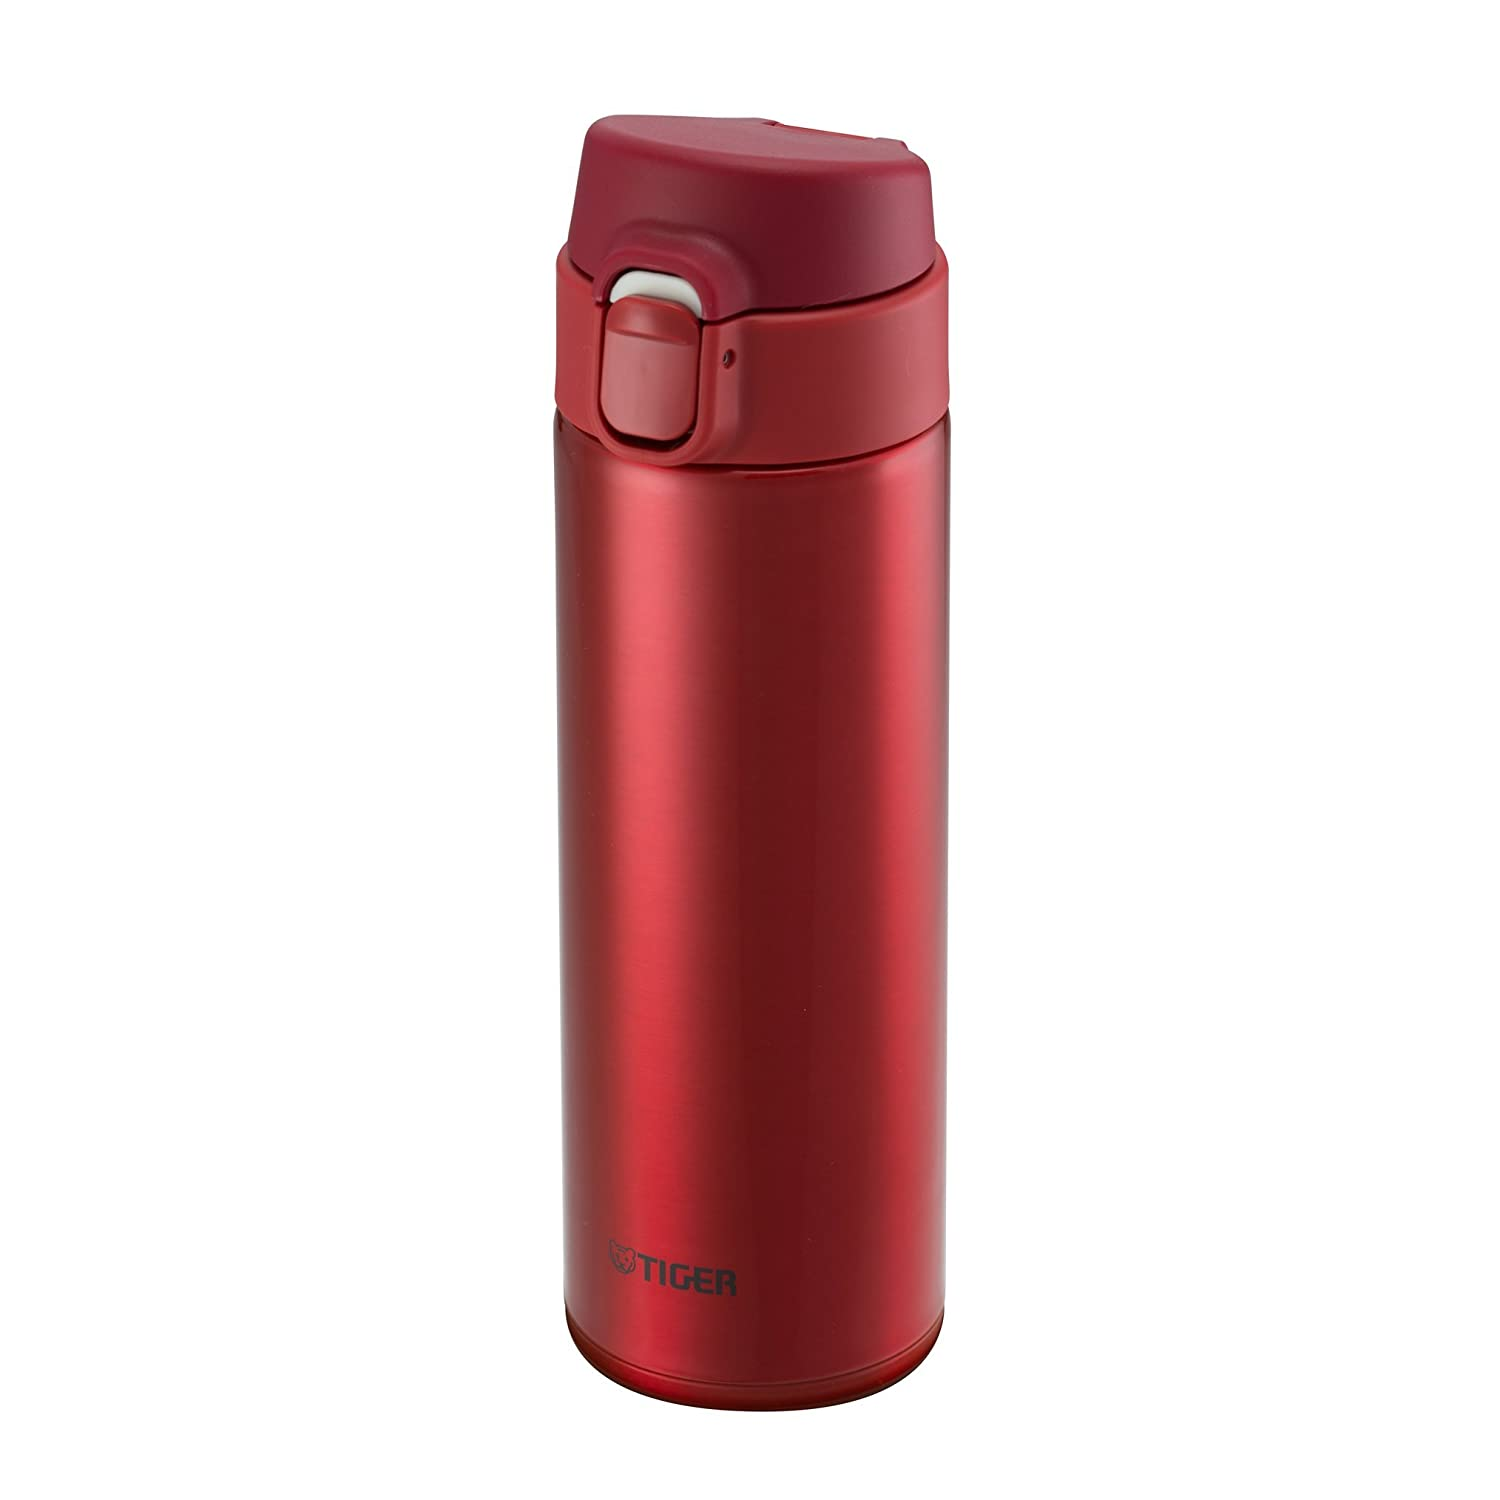 Tiger MMY-A048-RY Stainless Steel Vacuum Insulated Travel Mug, 16-Ounce, Red